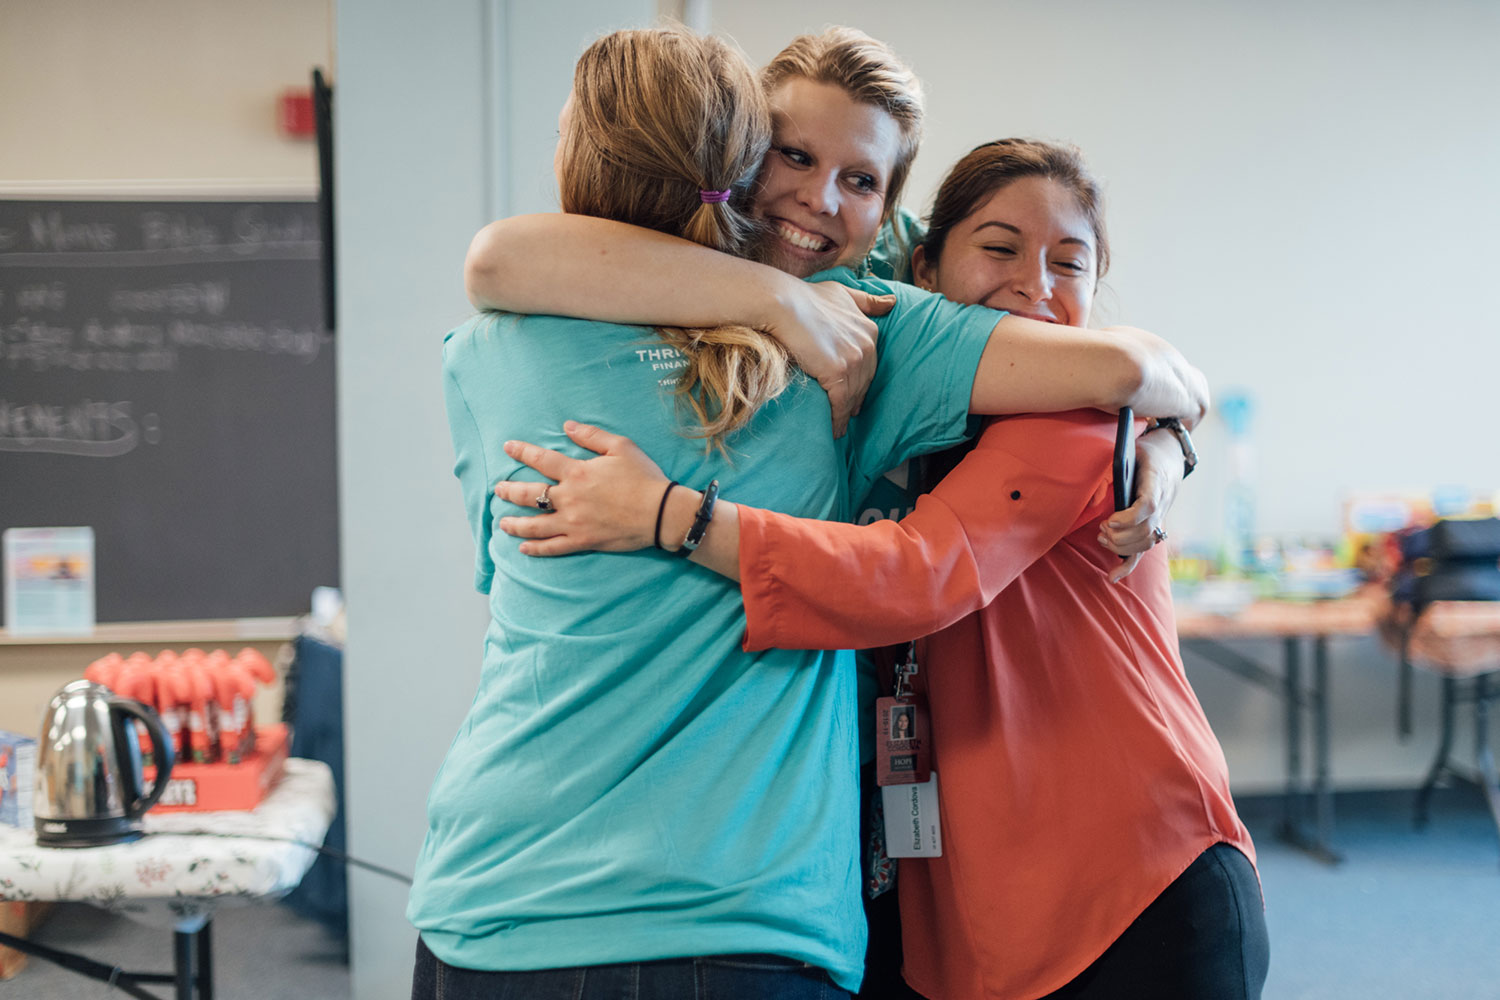 women hugging each other and smiling